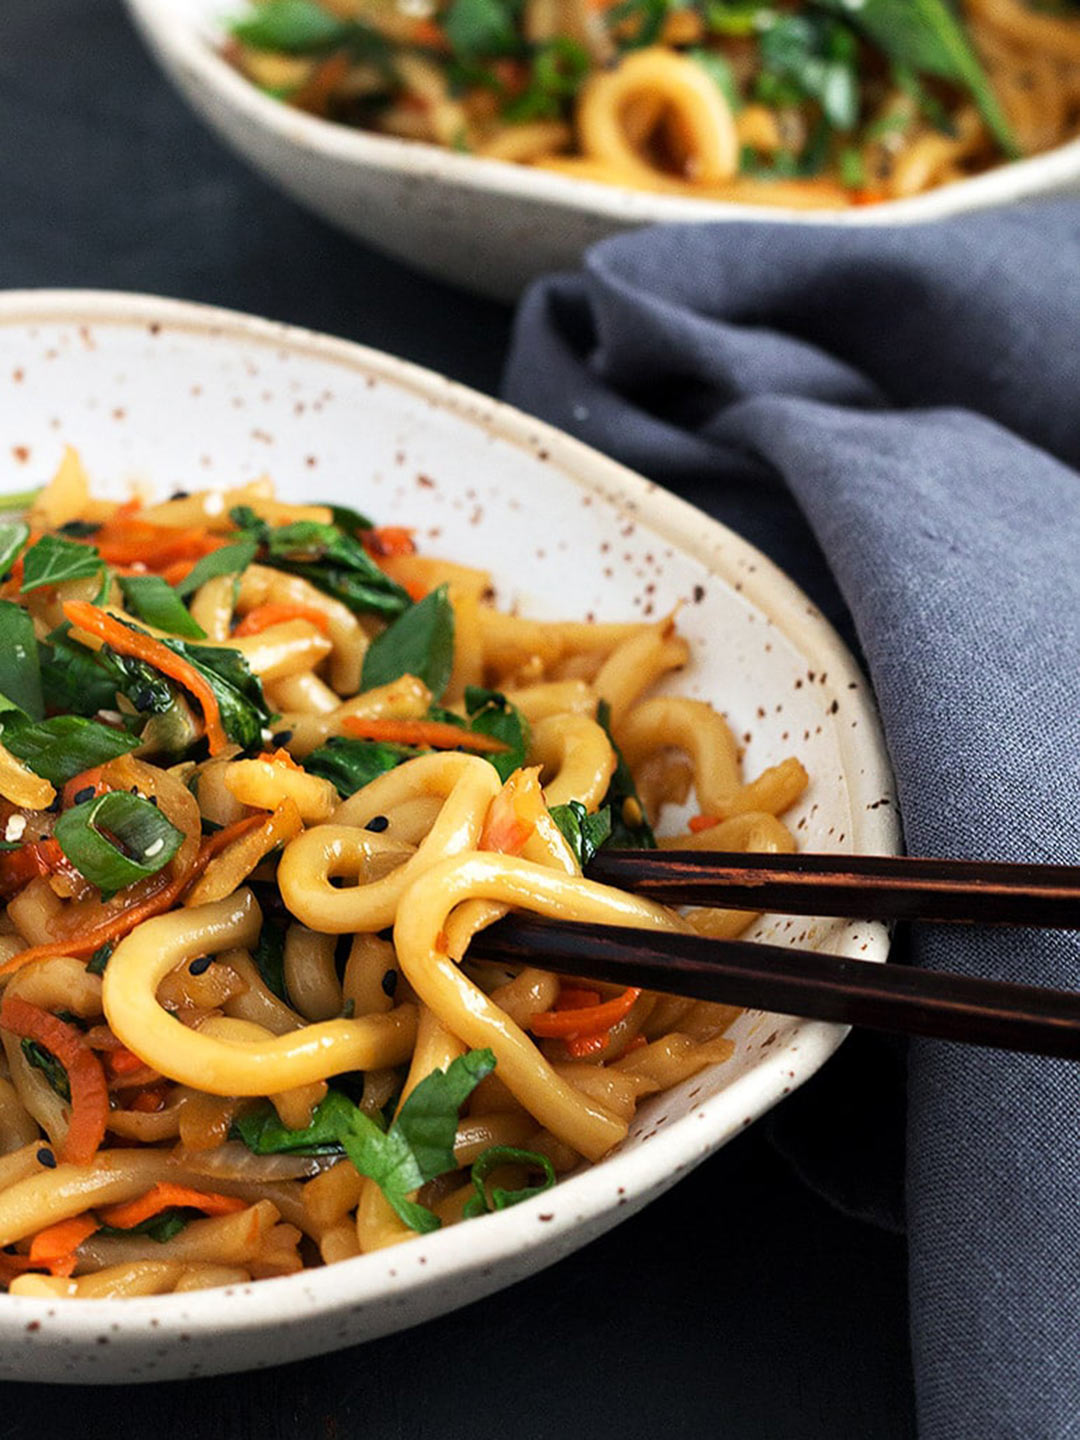 spicy udon noodles in bowl